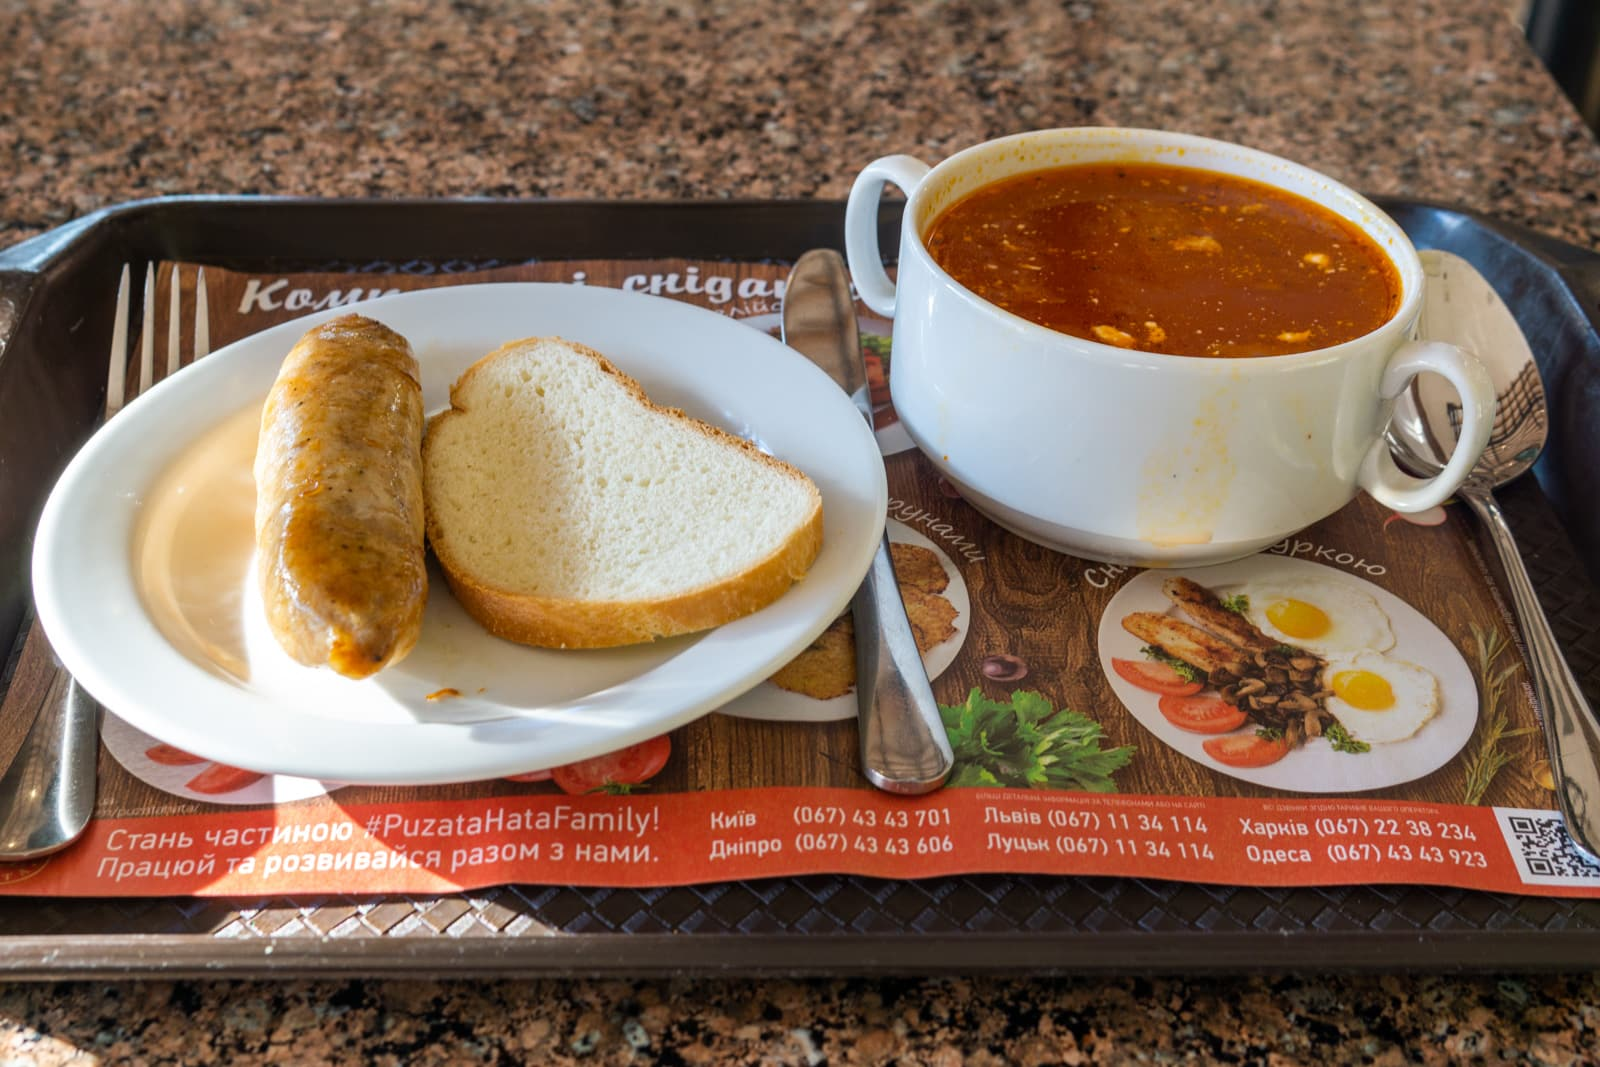 A typical cheap meal in a cafeteria in Ukraine